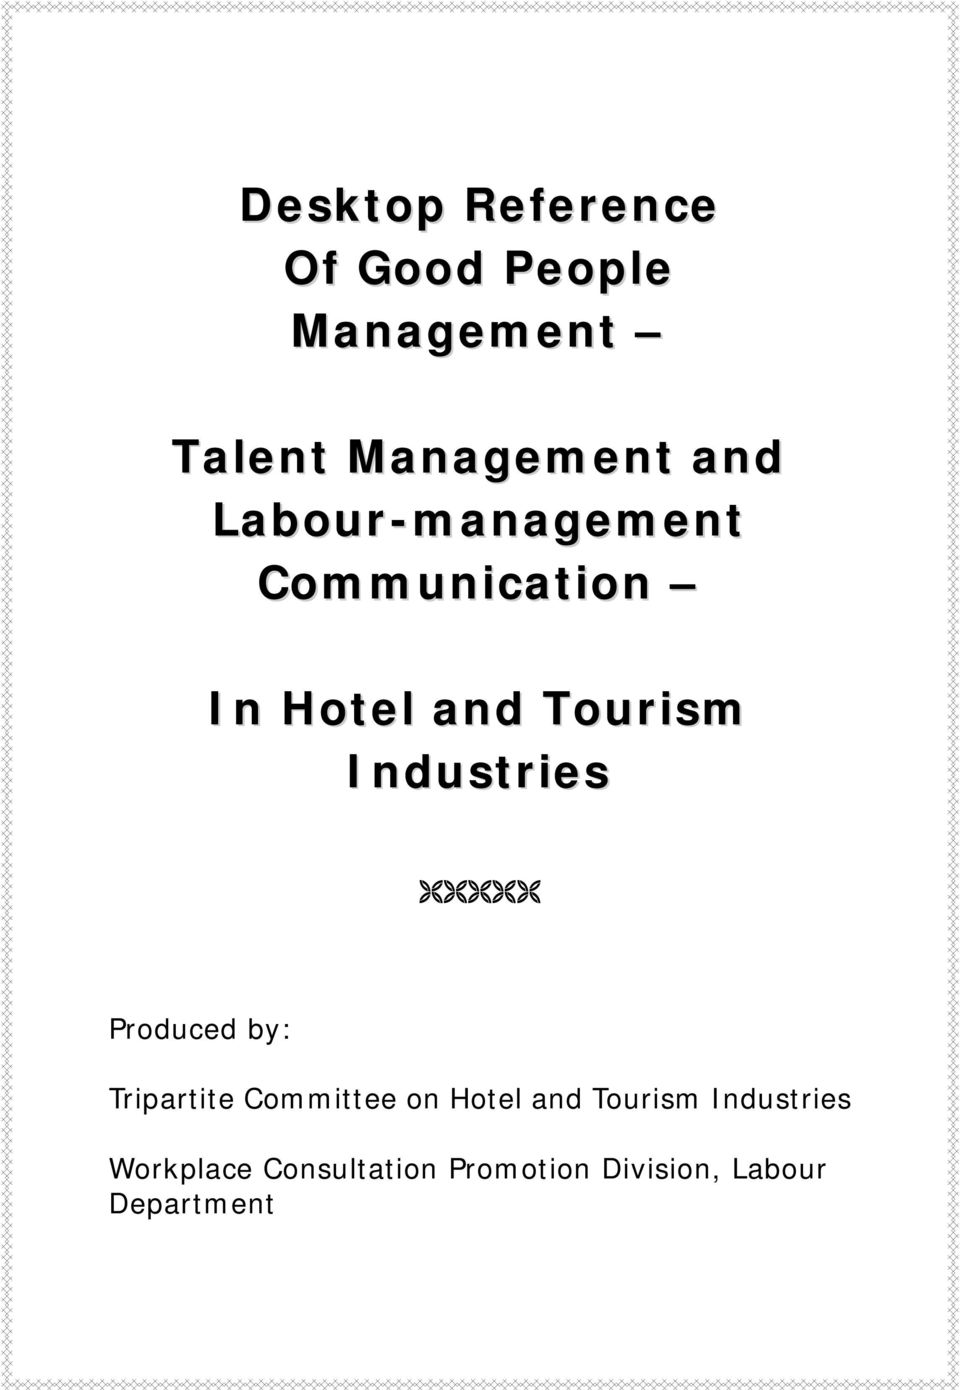 Industries Produced by: Tripartite Committee on Hotel and